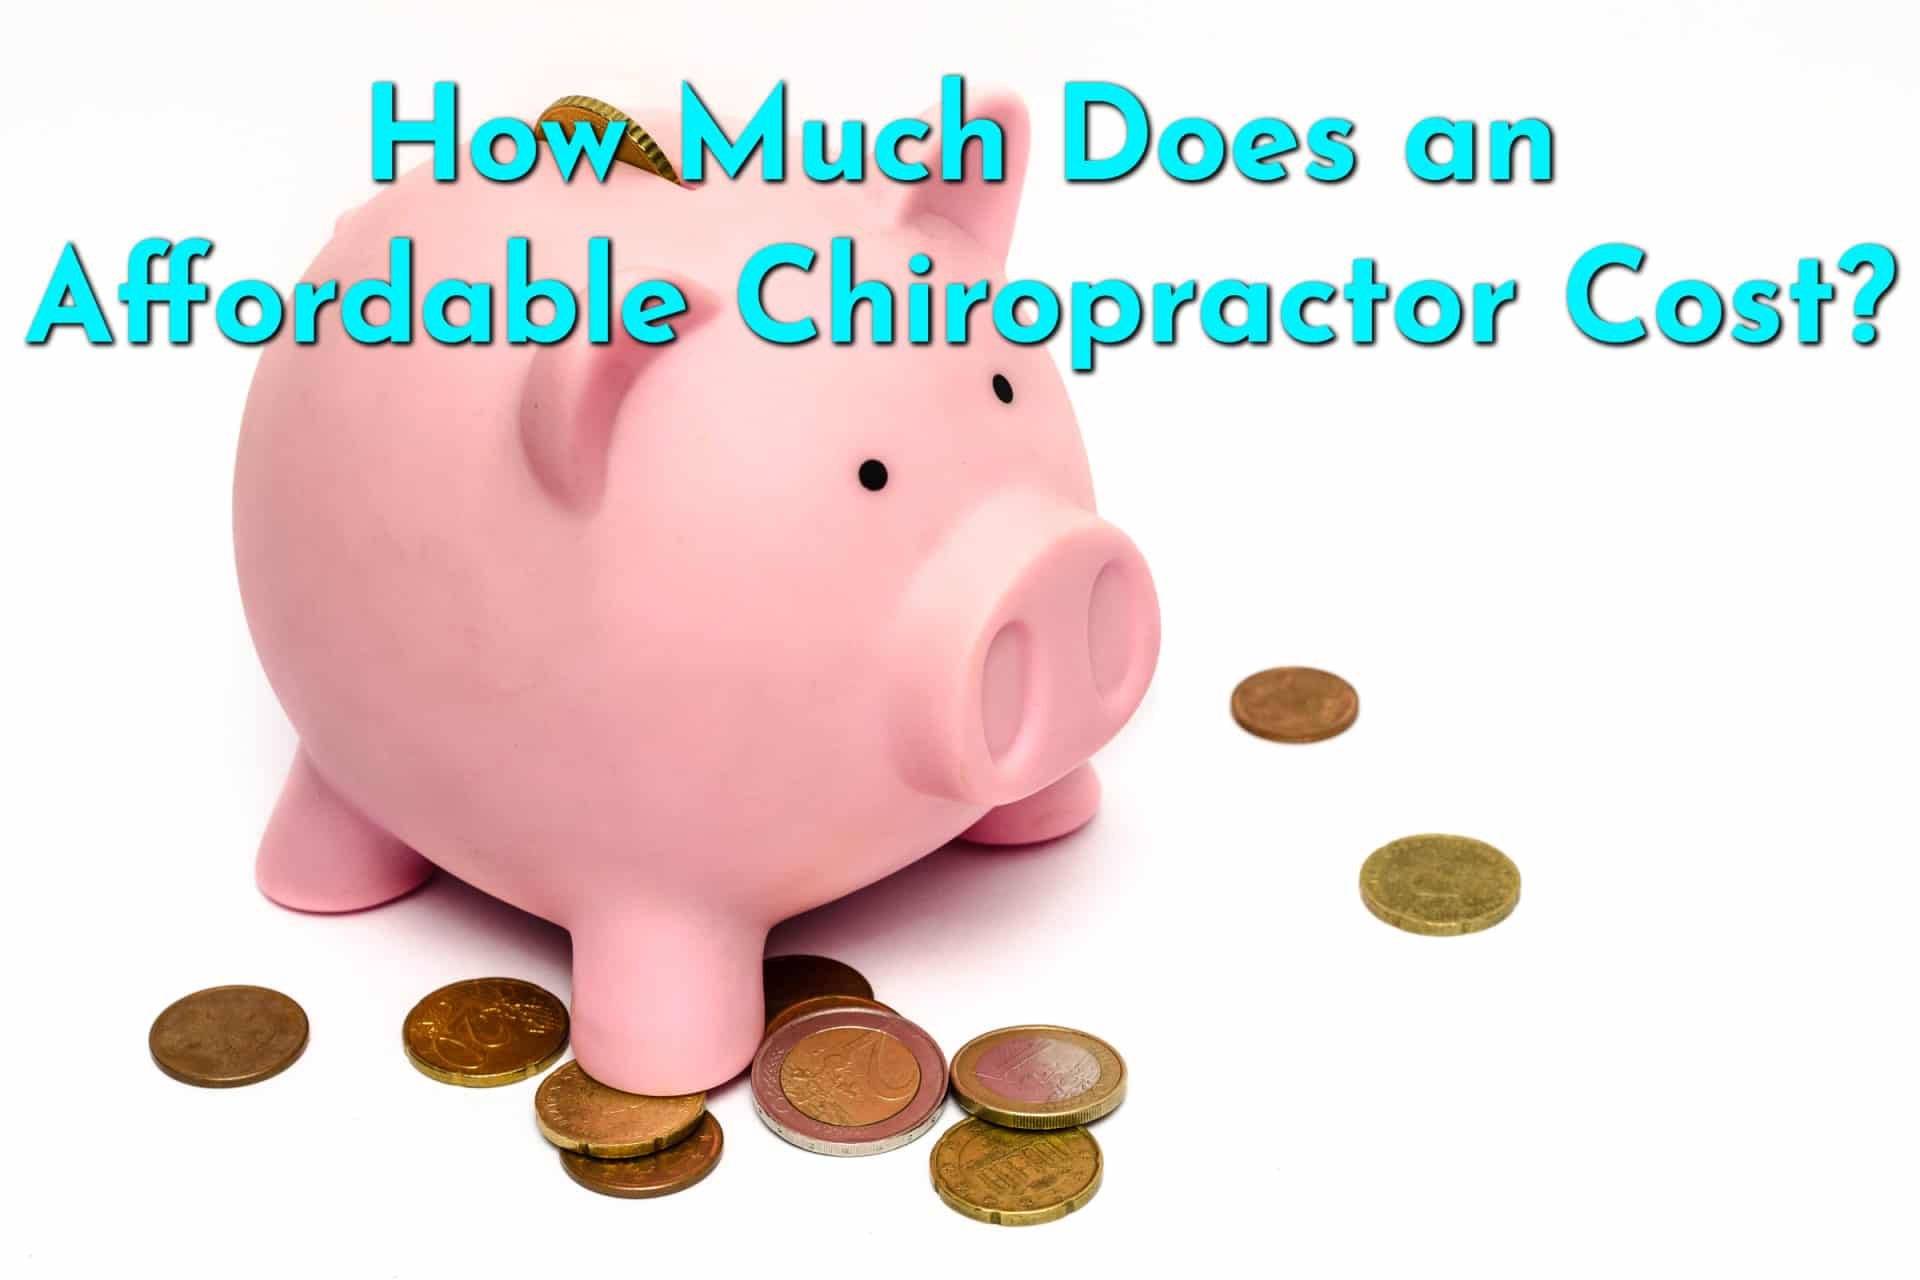 How Affordable is a Chiropractor Really? Image of piggy bank with coins